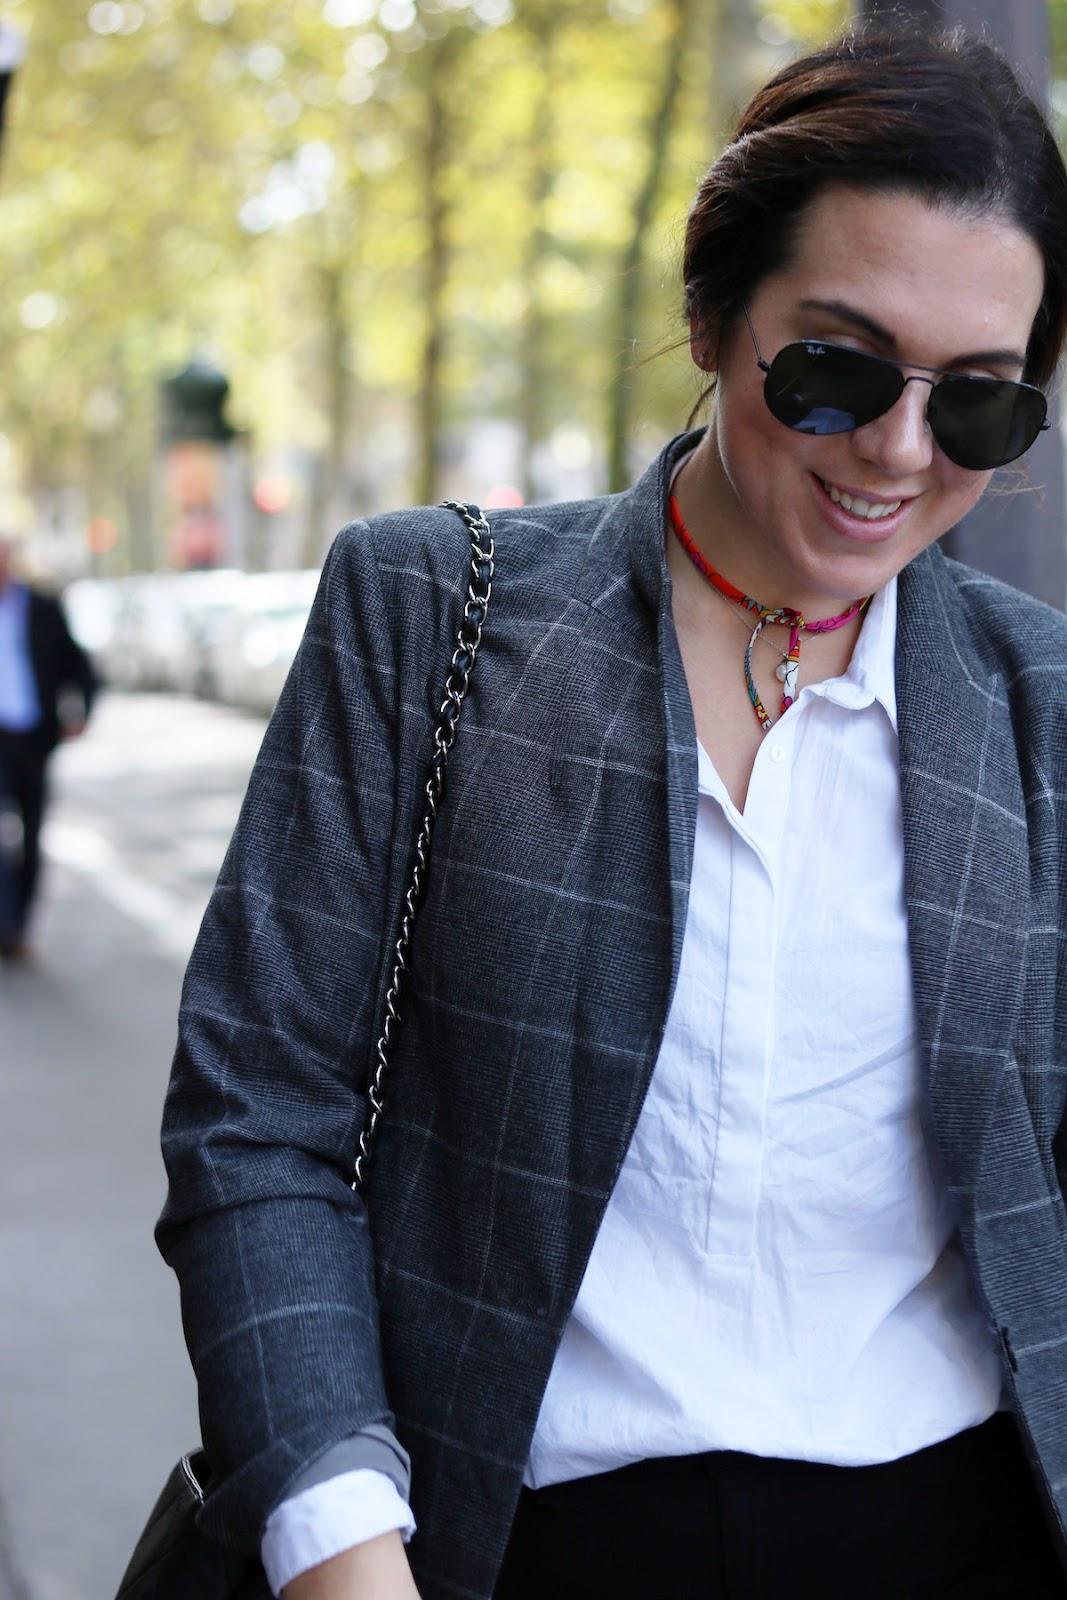 Le Chateau glen check plaid blazer outfit vancouver fashion blogger paris